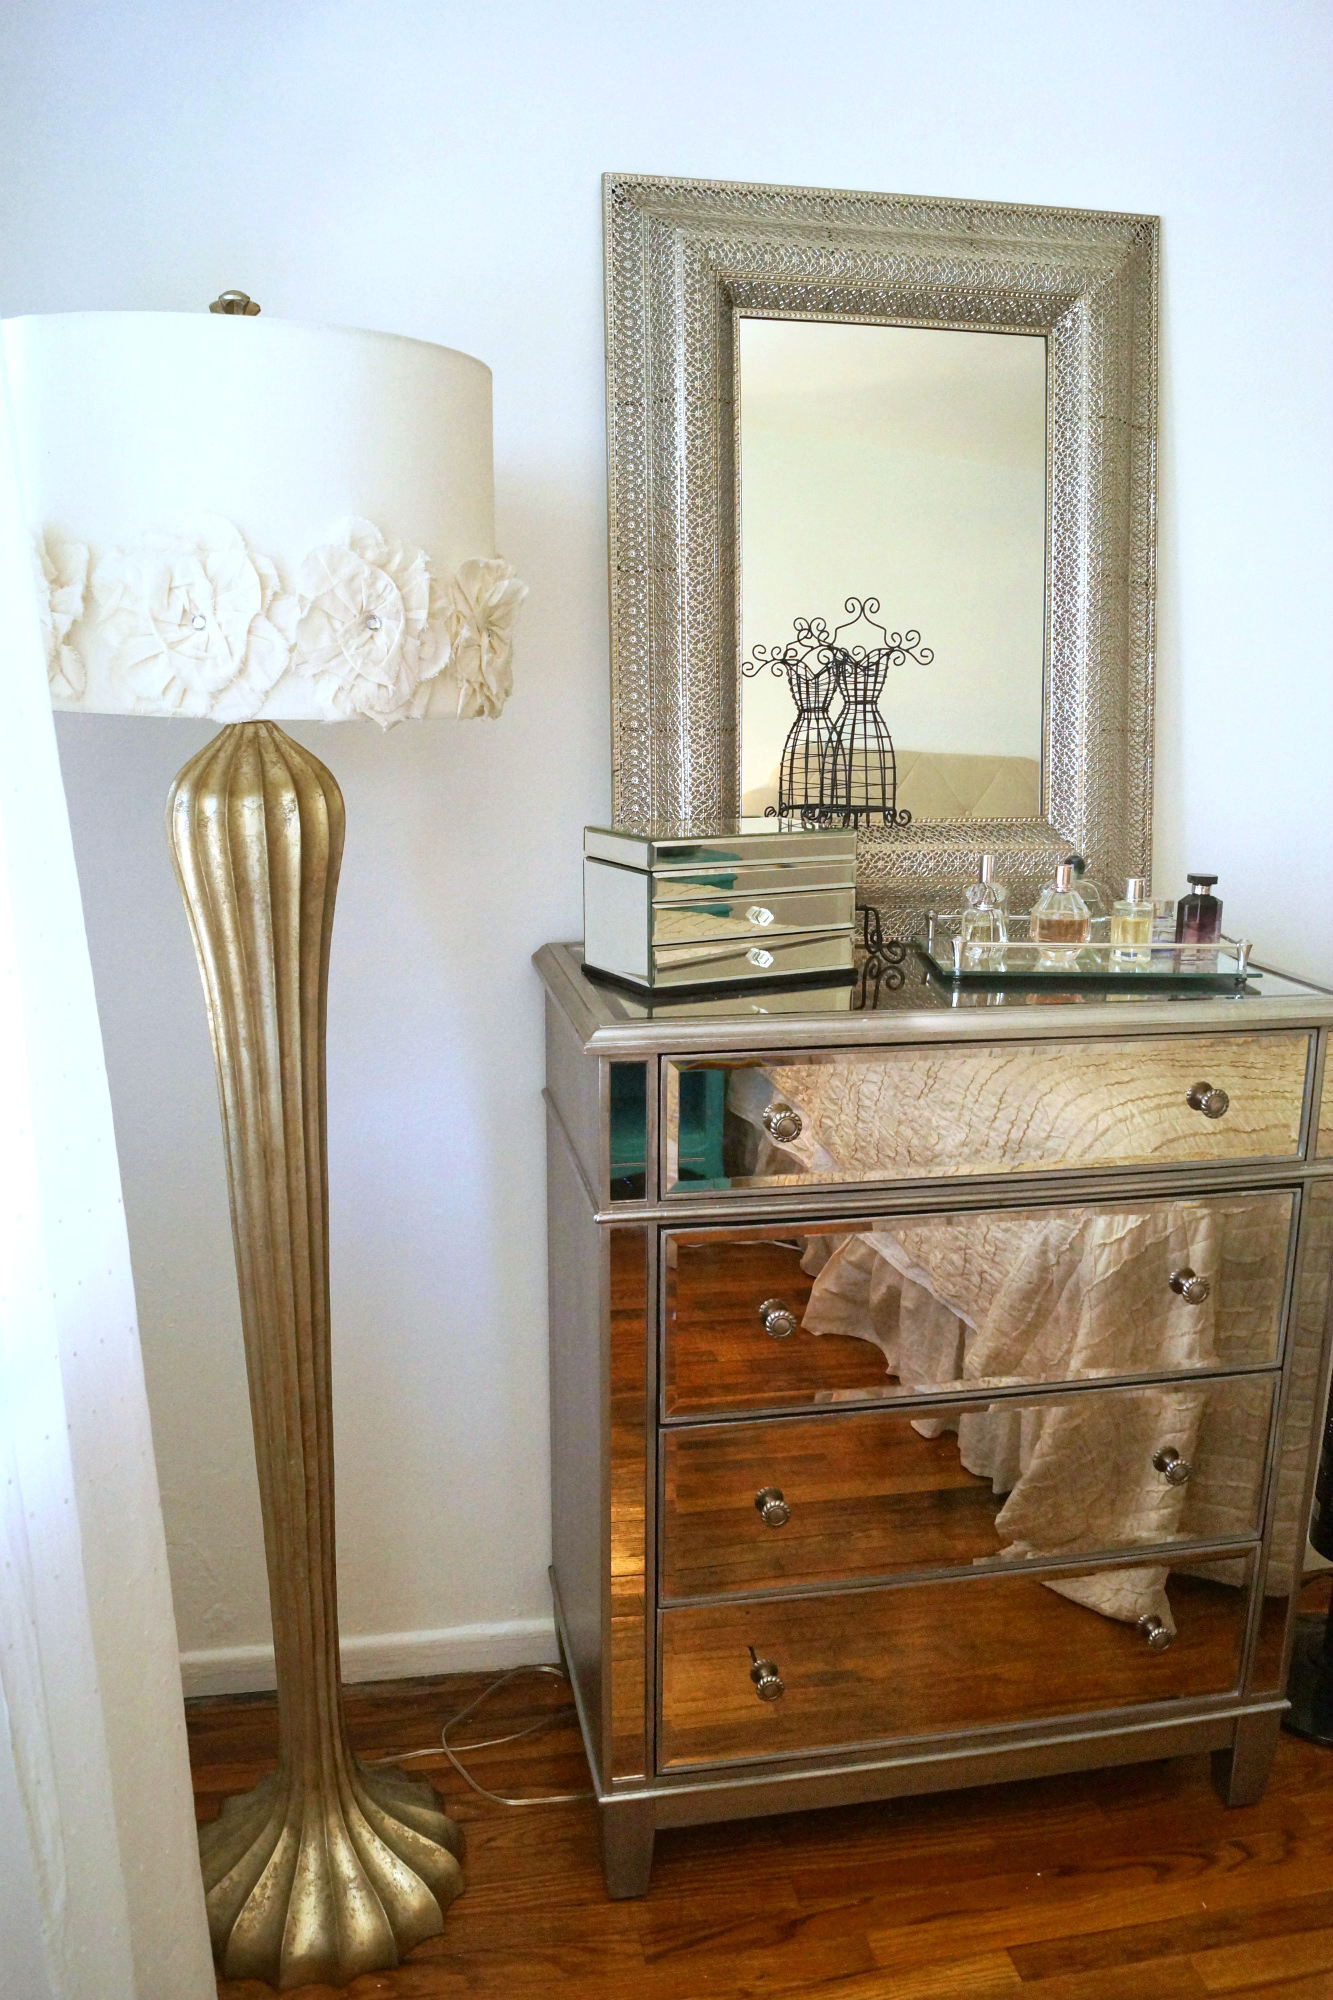 the outrageous cool mirrored nightstand from target ideas hotxpress friendly hayworth furniture silver rectangle wall mounted mirrord with drawer design modern dresser mirror